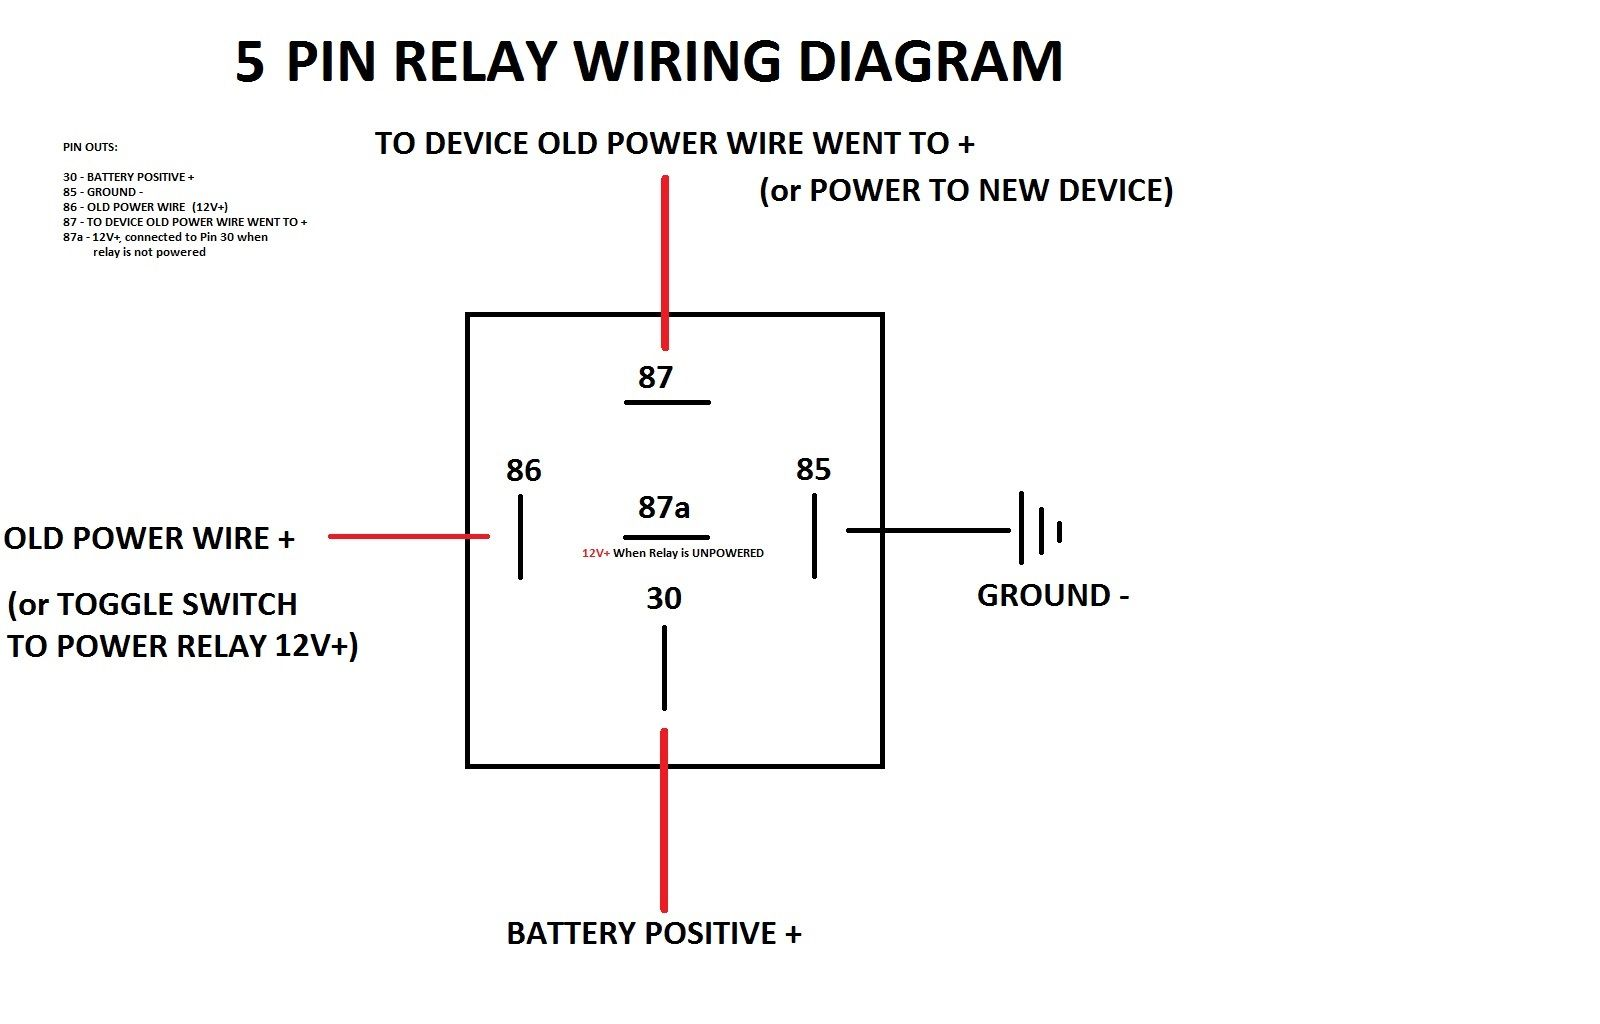 Simple 5 Pin Relay Diagram DSMtuners Relay, Diagram